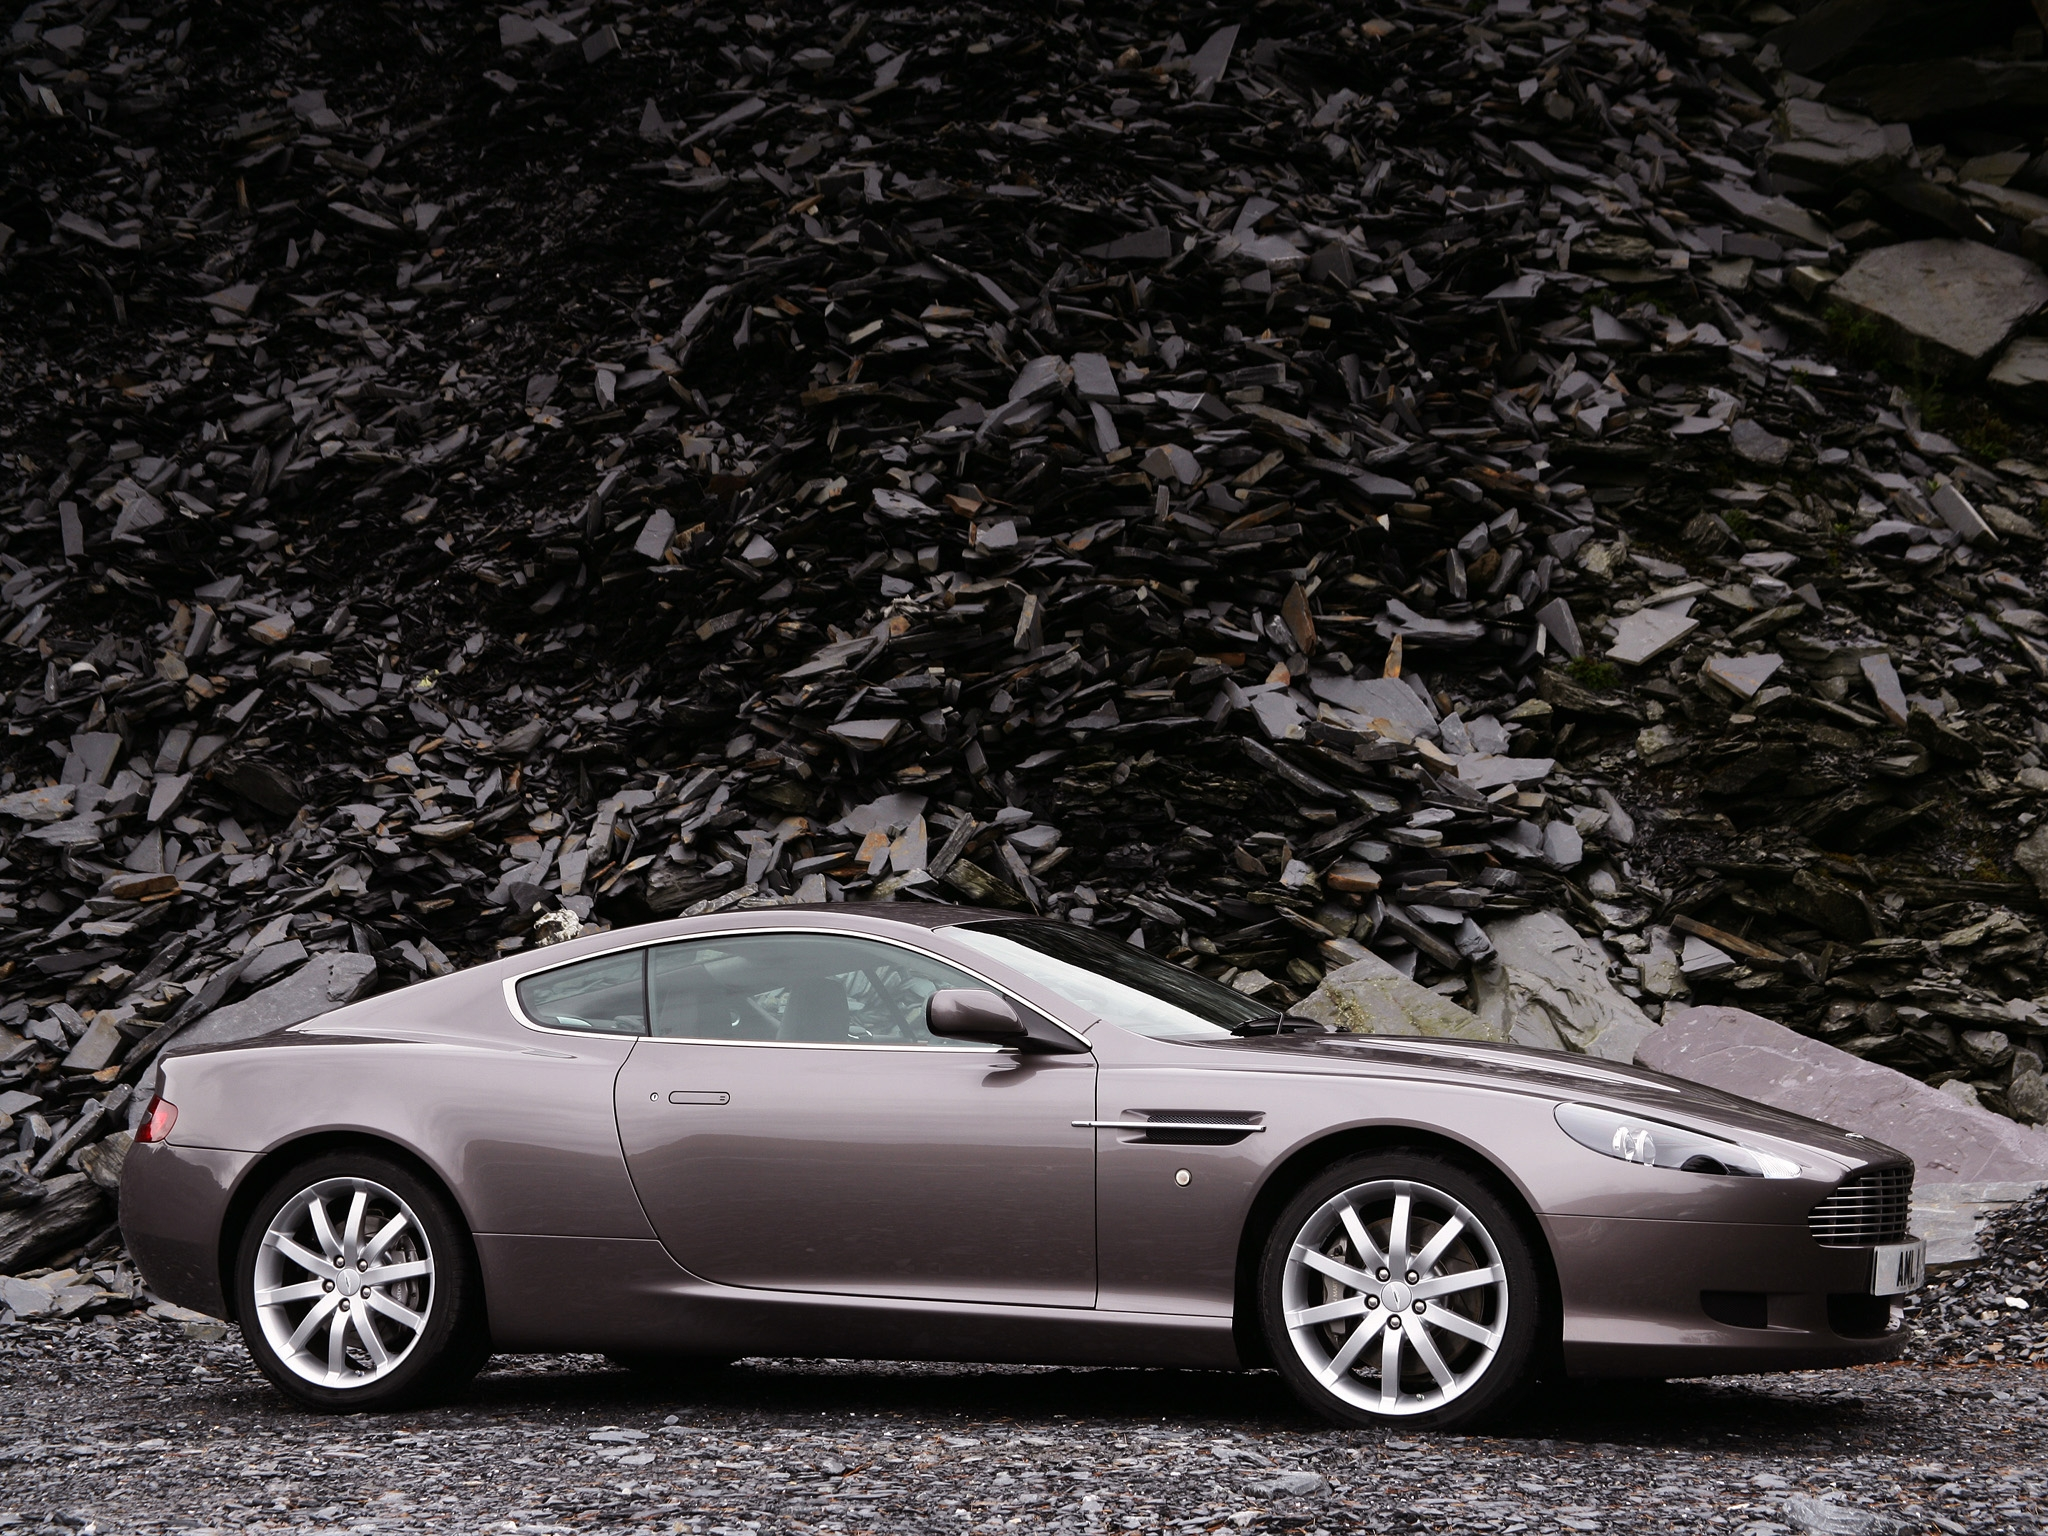 131800 Screensavers and Wallpapers Aston Martin for phone. Download Auto, Aston Martin, Cars, Grey, Side View, Style, 2004, Db9 pictures for free